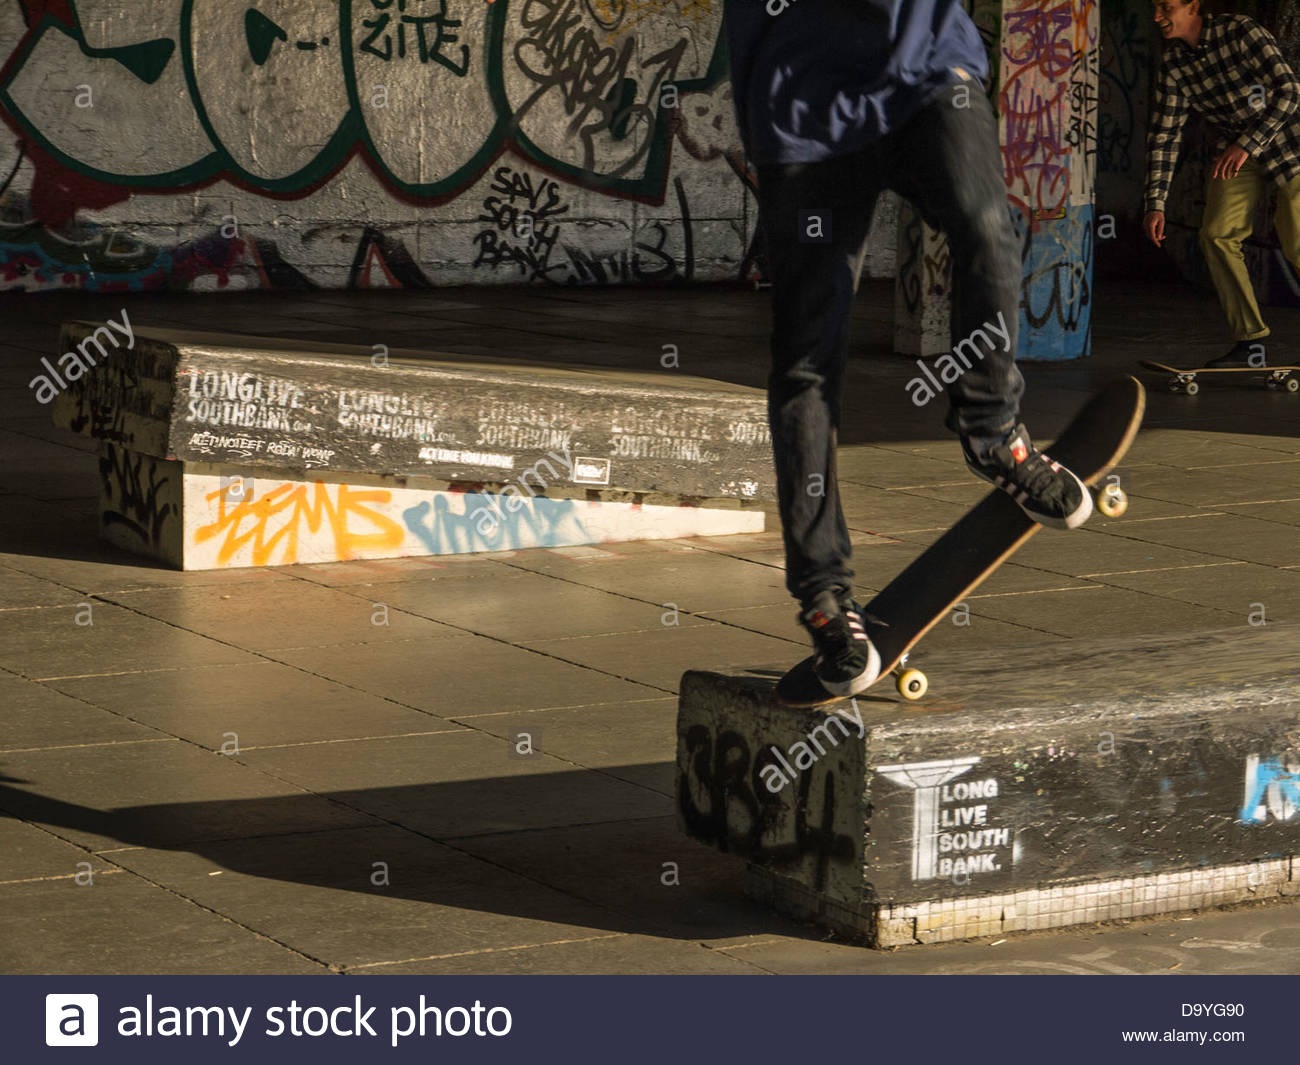 London England UK Skate Board in action Southbank - Stock Image